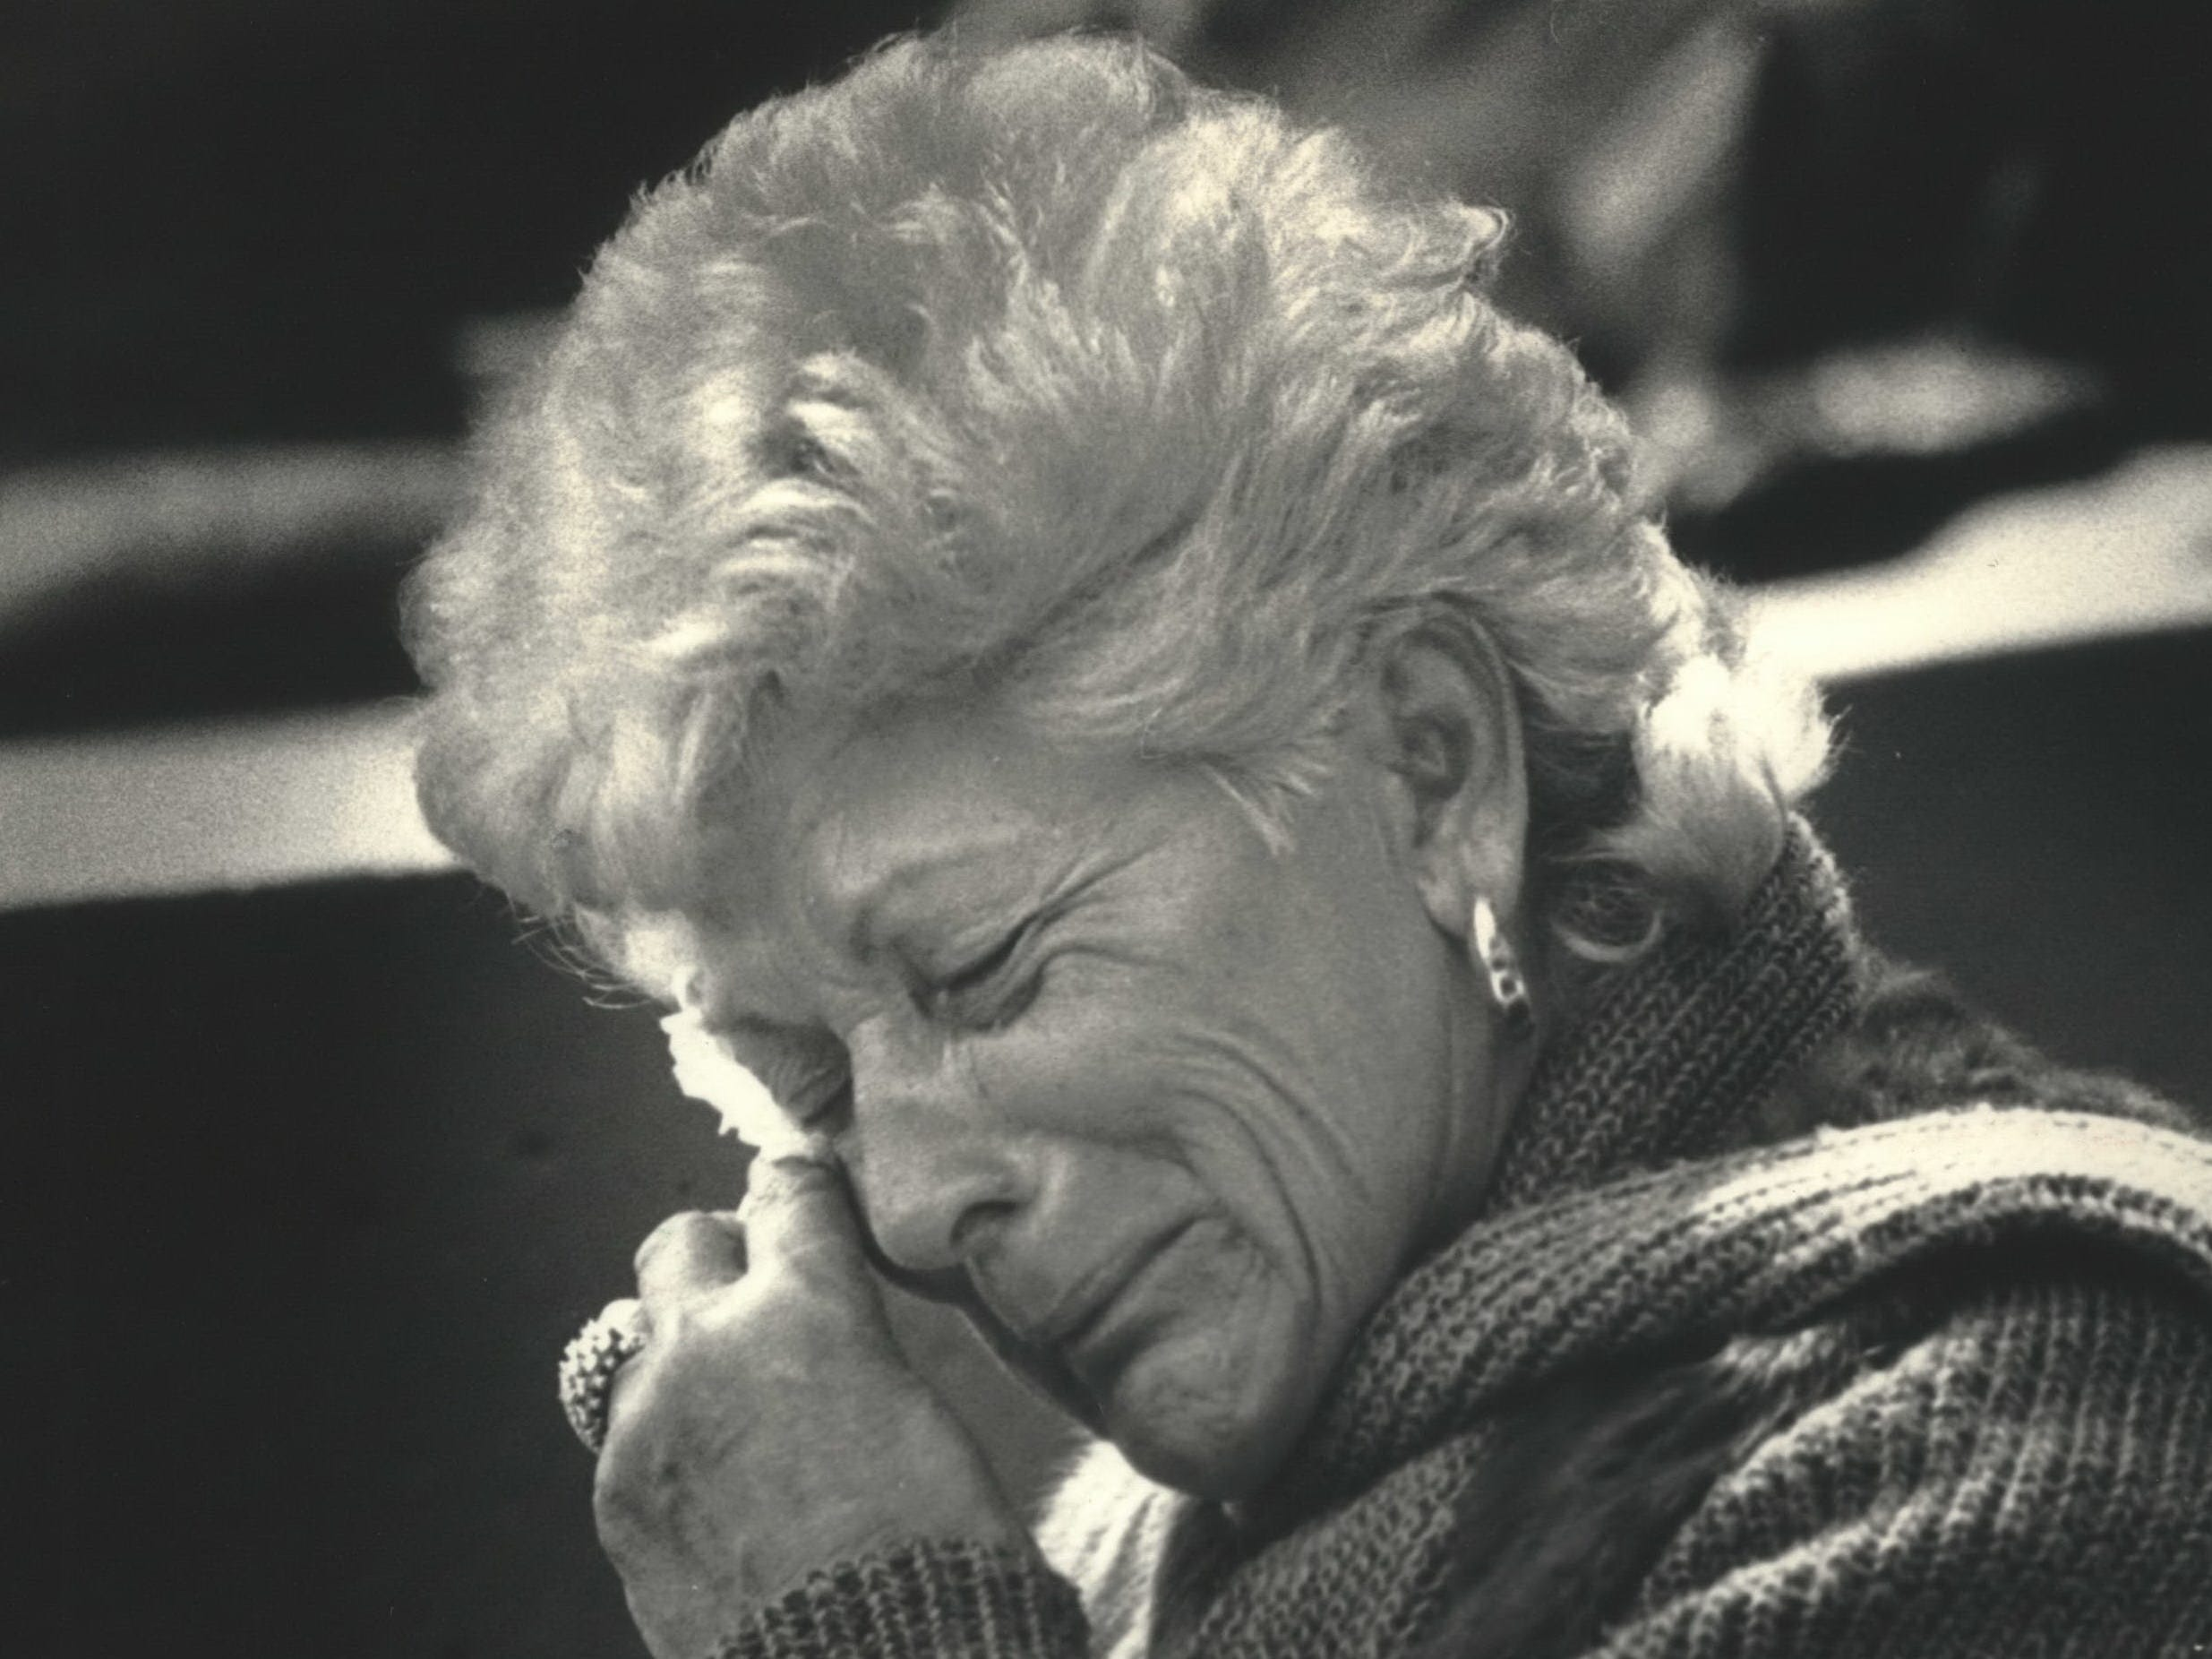 Audrey Kuenn, the widow of former Milwaukee Brewers Manager Harvey Kuenn, wipes away a tear during a tribute to her late husband before opening day on April 15, 1988, at County Stadium. She was later one of four people who threw out the ceremonial first pitch. The Brewers lost the 1988 home opener, 7-1, to the New York Yankees before a sellout crowd of 55,887. This photo was on the front page of the April 16, 1988, Milwaukee Journal.